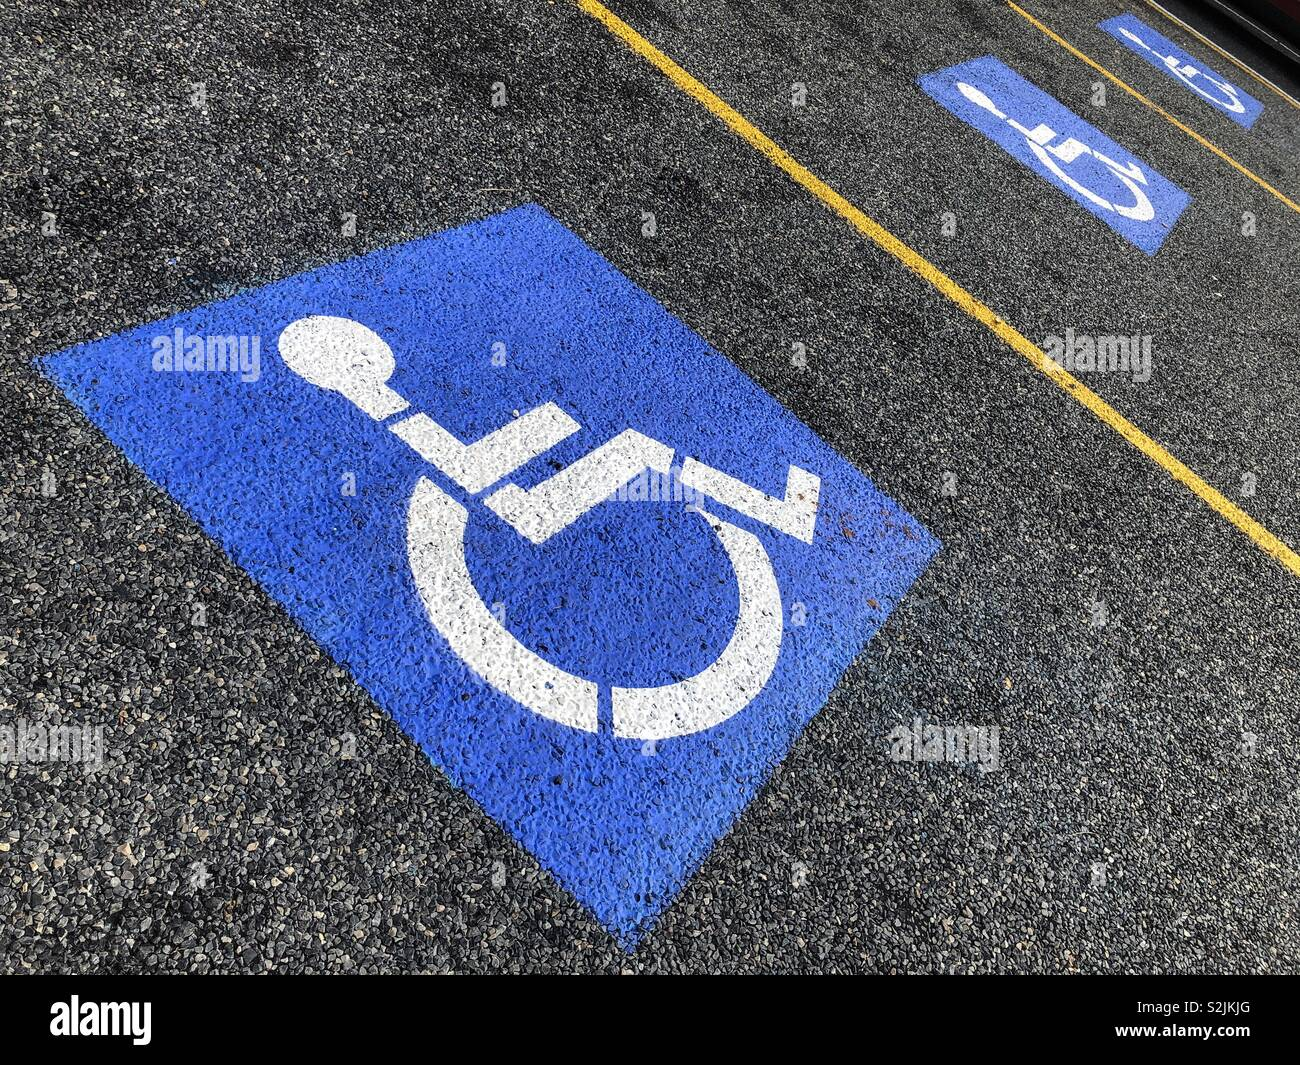 Parking spots reserved for people with disabilities. Stock Photo